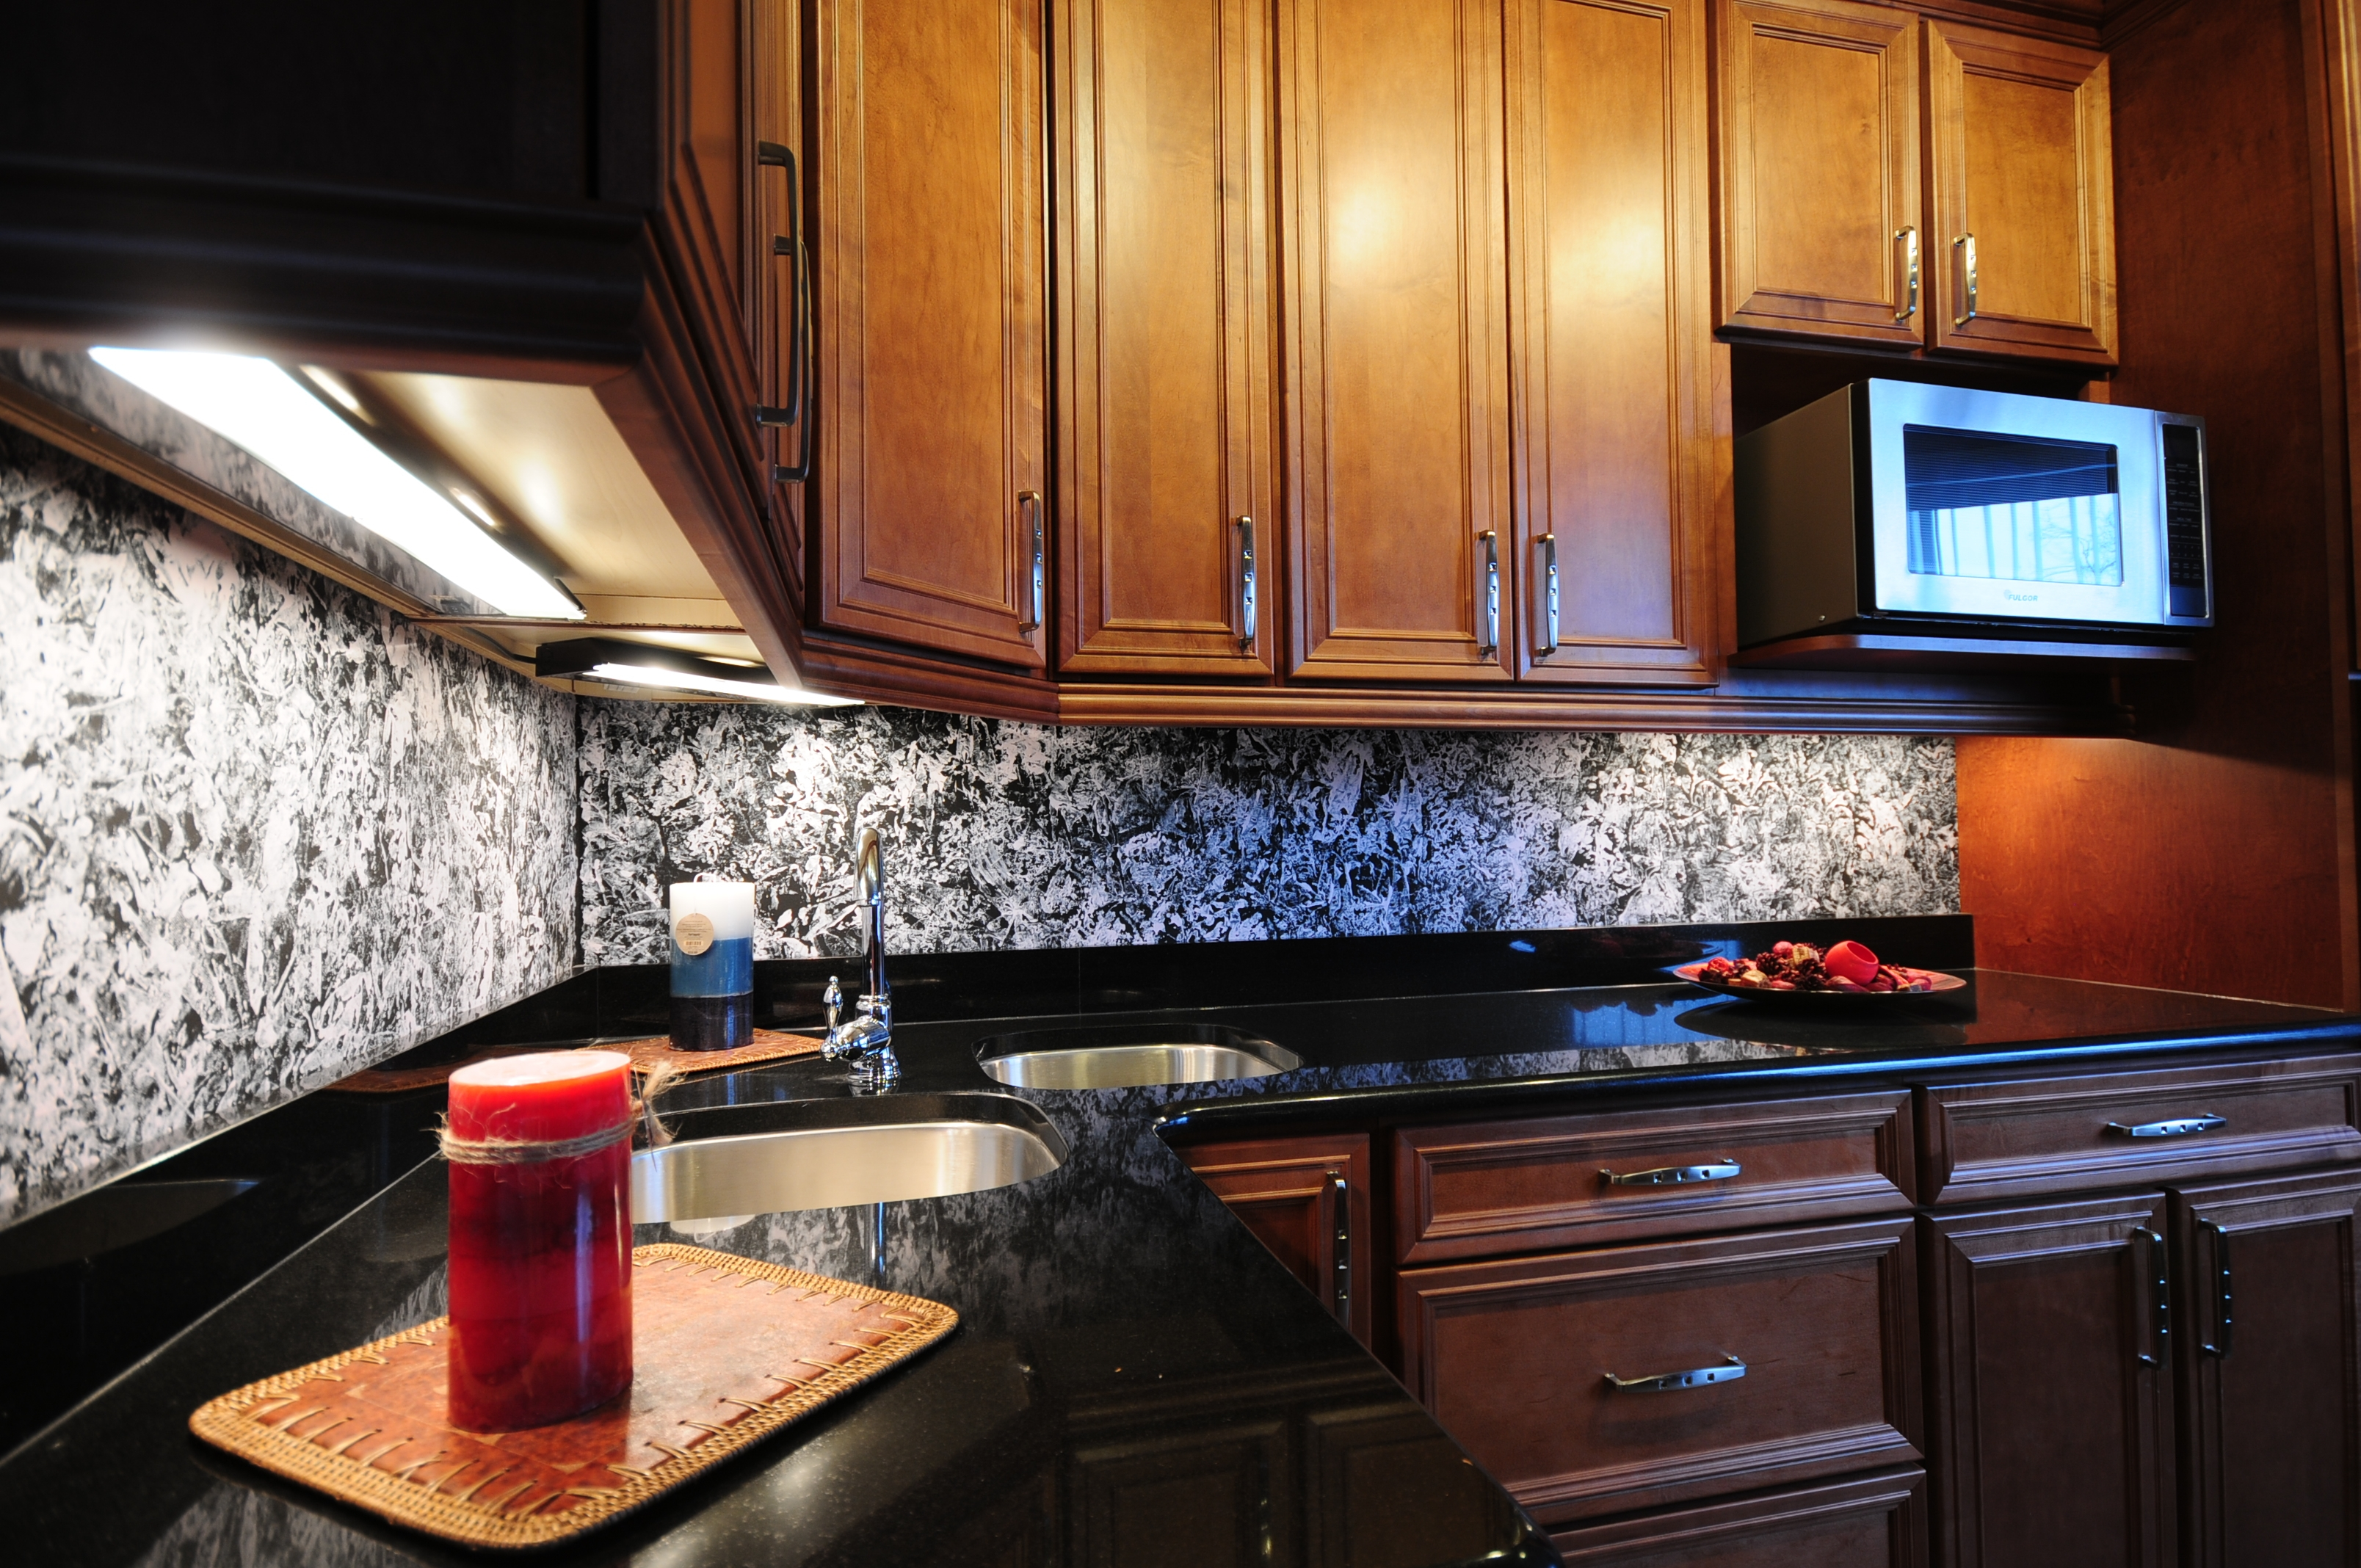 Kitchens and Countertops